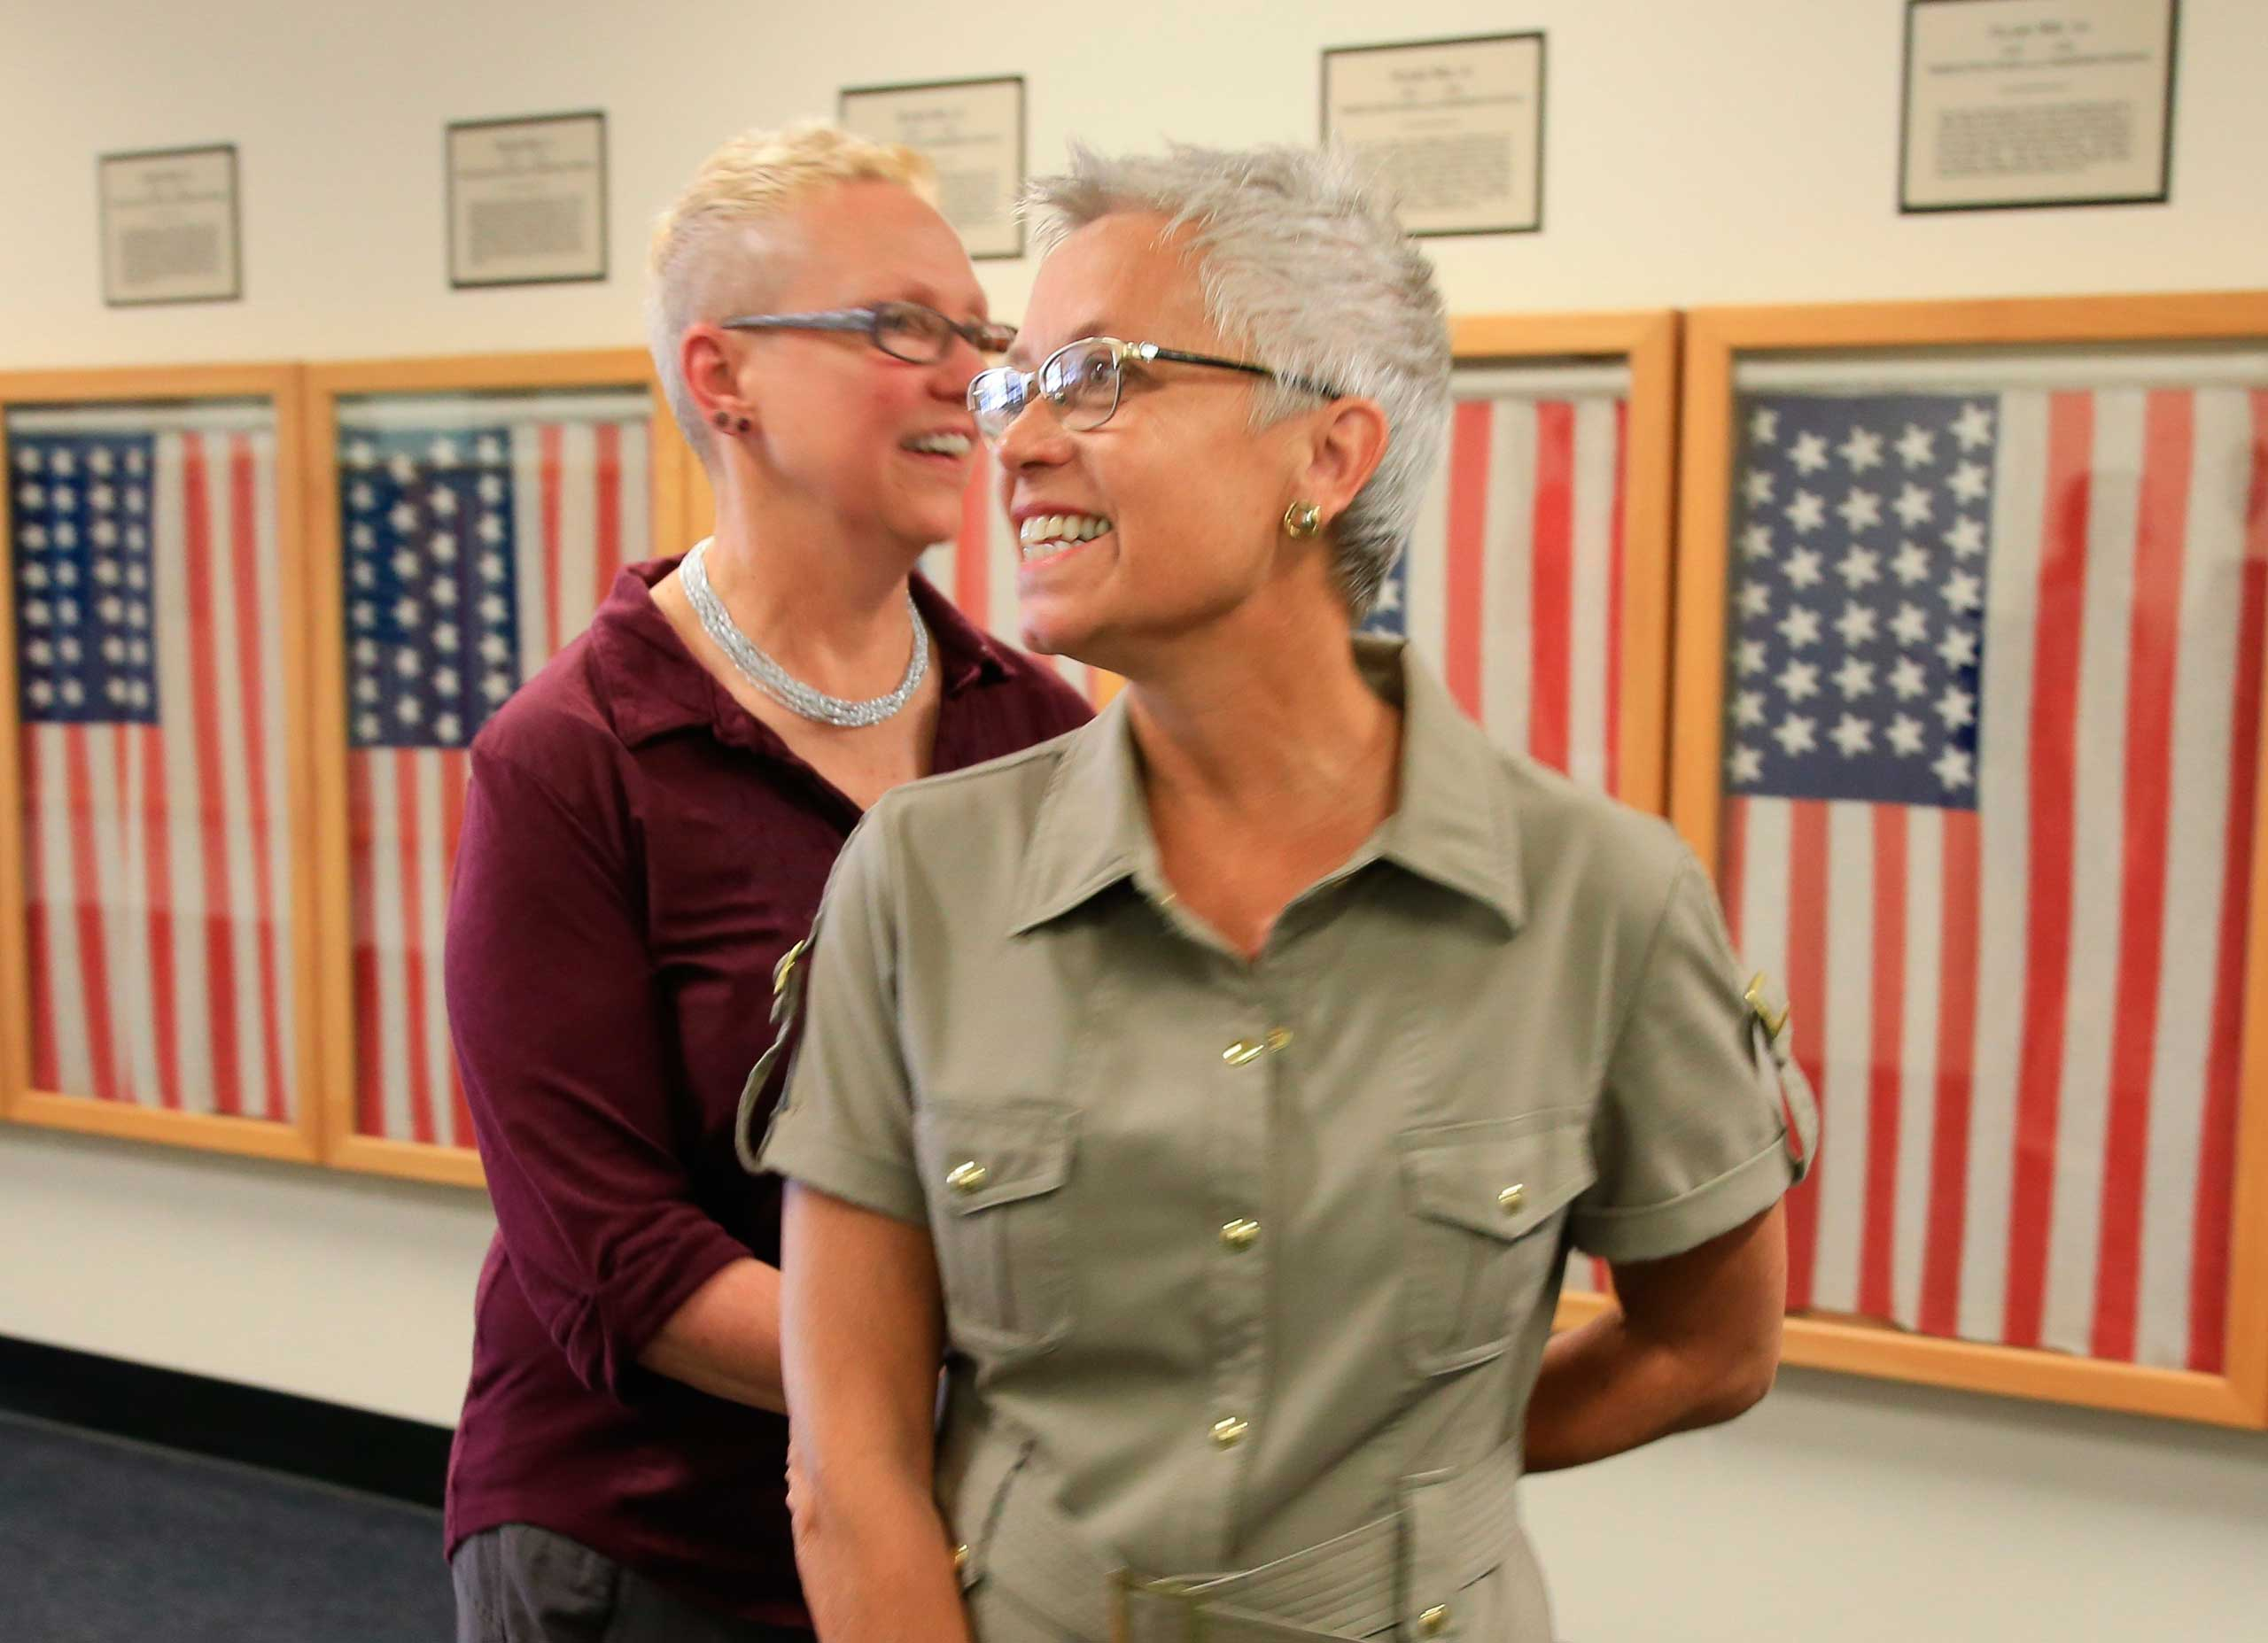 Beverly Reicks, right, and Kathy Petterson, the first same sex couple to wed in Omaha, Neb., leave the Douglas County Clerk's office on June 26, 2015.